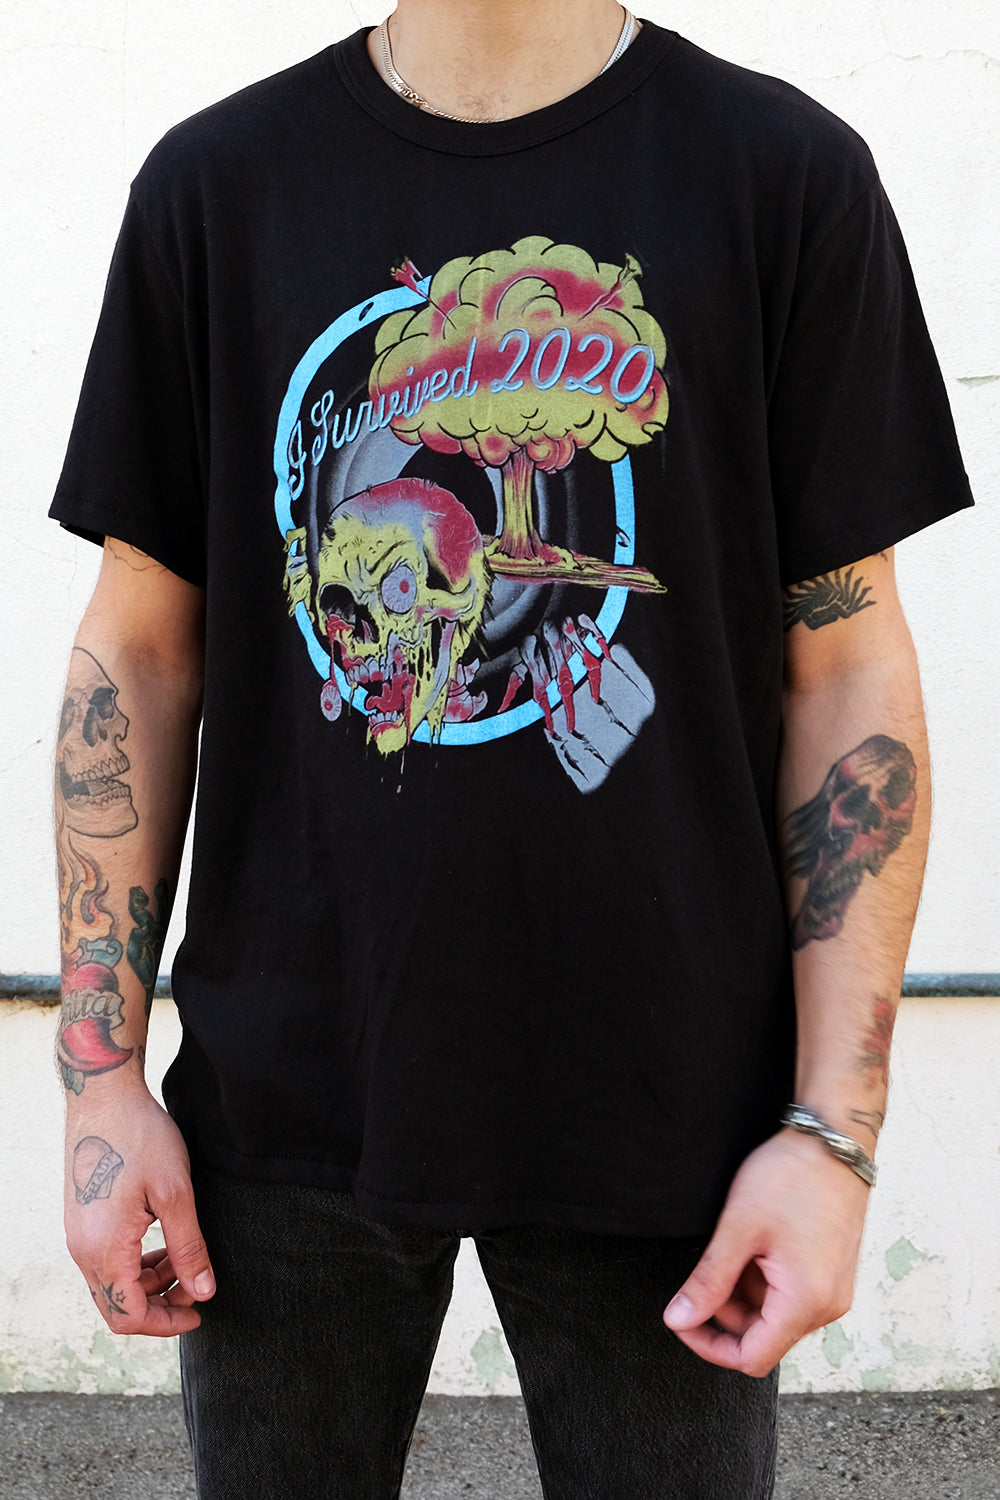 2020 Explosion Unisex 50/50 Black Tee by Gimme Danger | In Stock